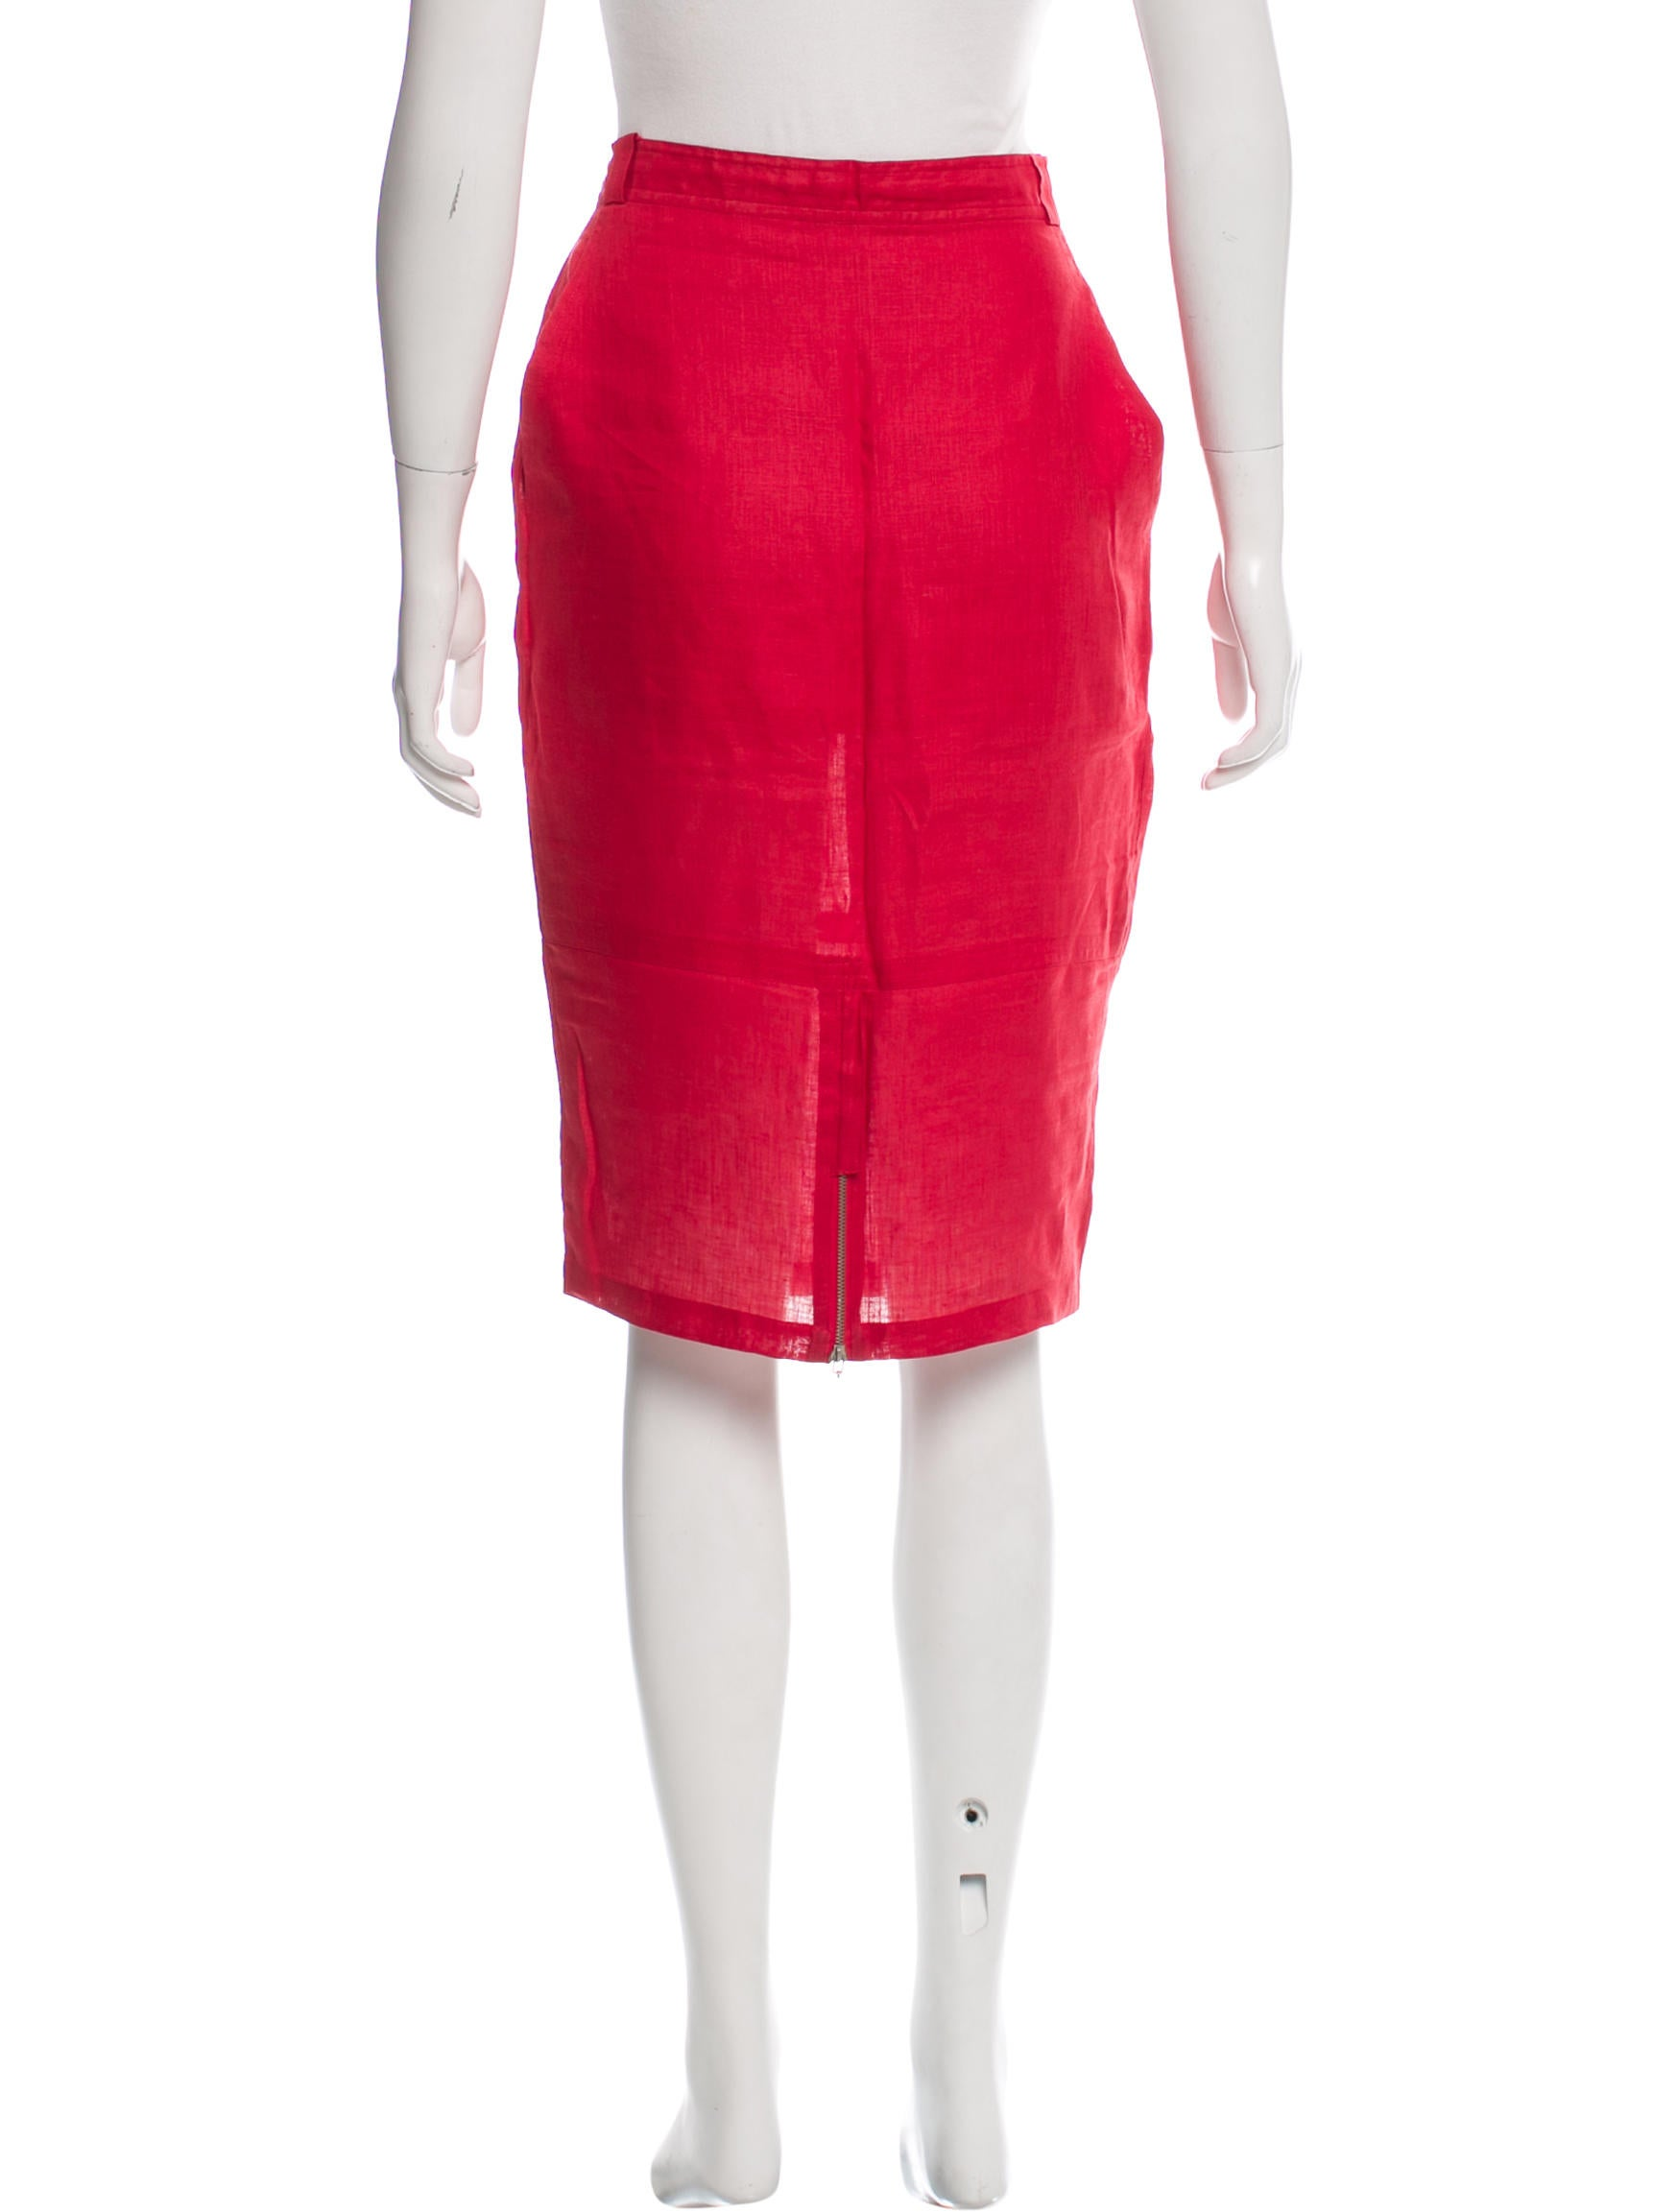 Gianni Versace Linen Knee Length Skirt Clothing  : GVE205803enlarged from www.therealreal.com size 1747 x 2305 jpeg 133kB